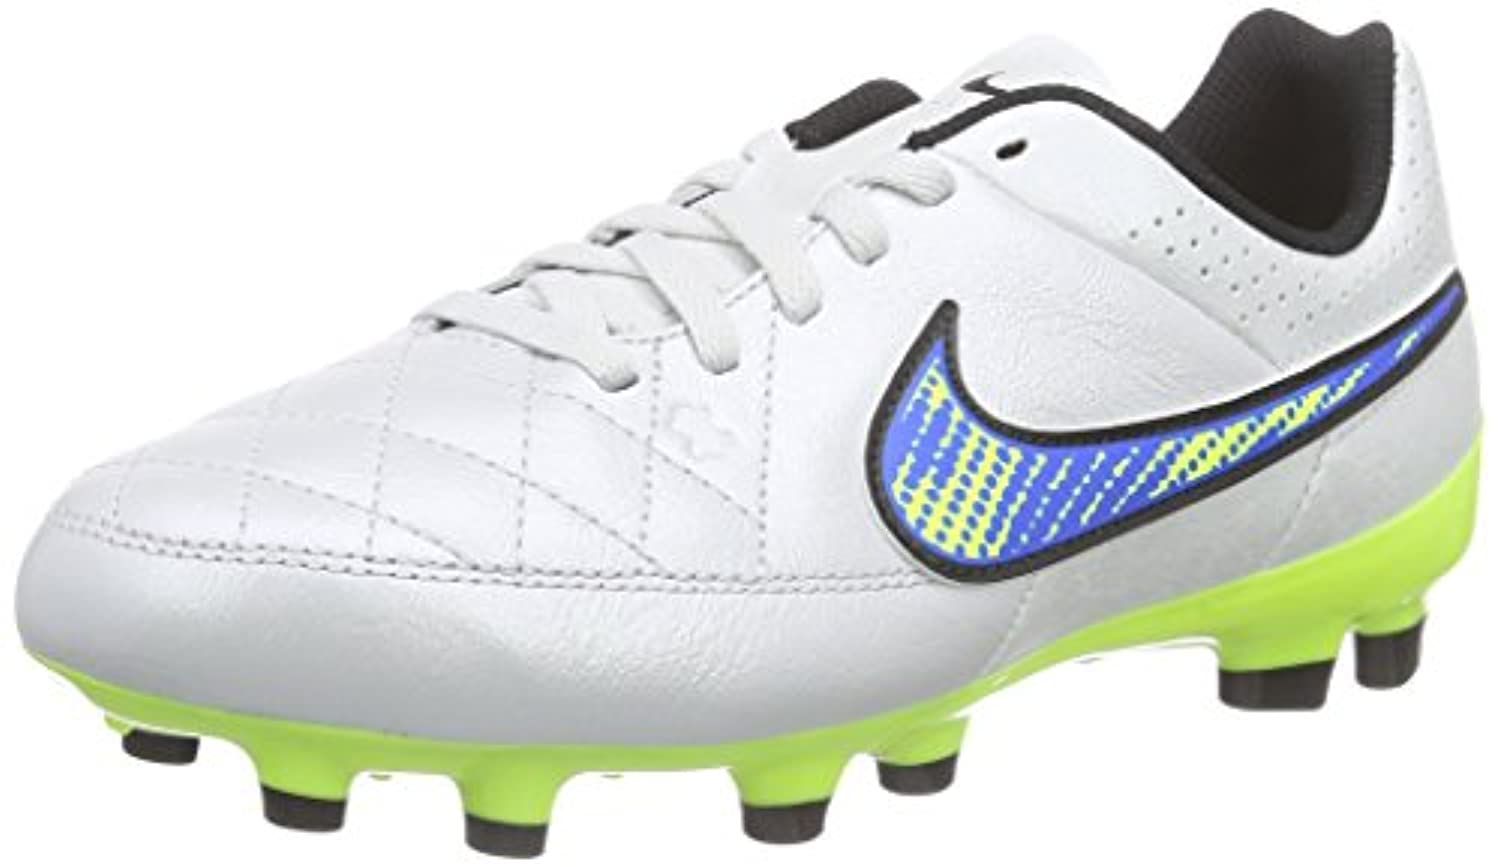 Nike Tiempo Genio Leather Firm Ground, Unisex Kids' Football Boots, Black/White/Black, 2 UK